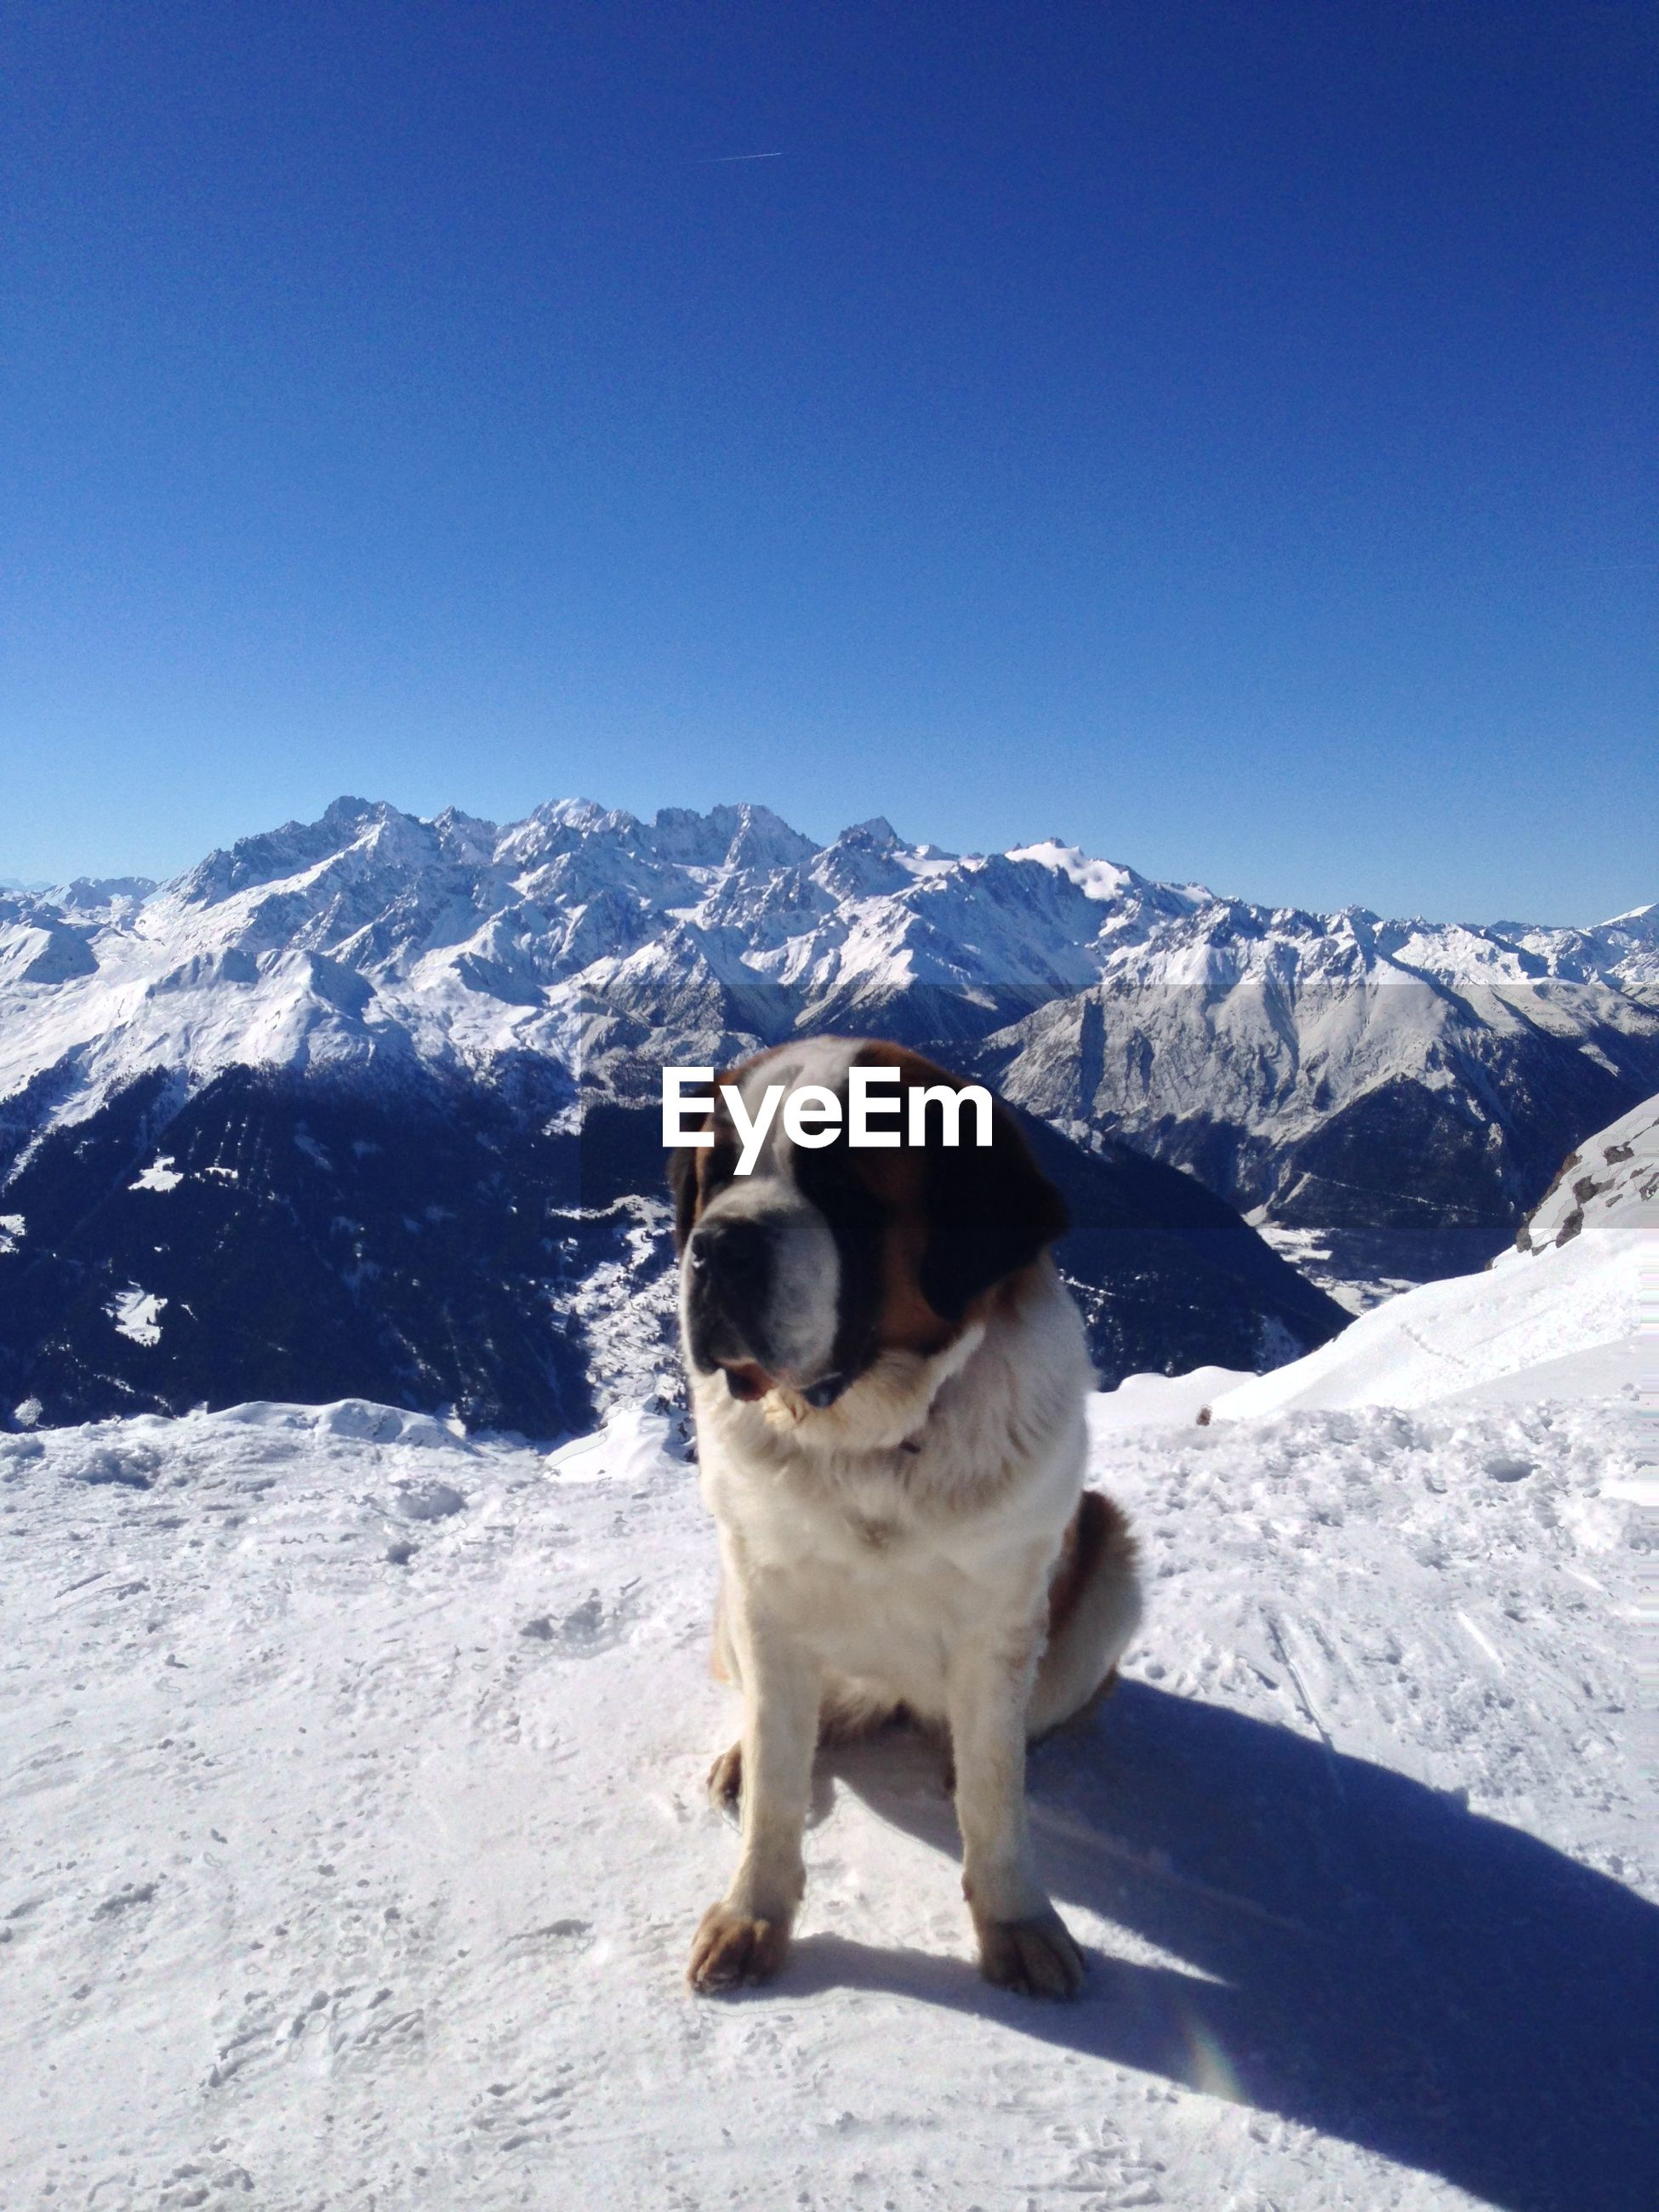 Saint bernard against snow covered mountains against clear blue sky